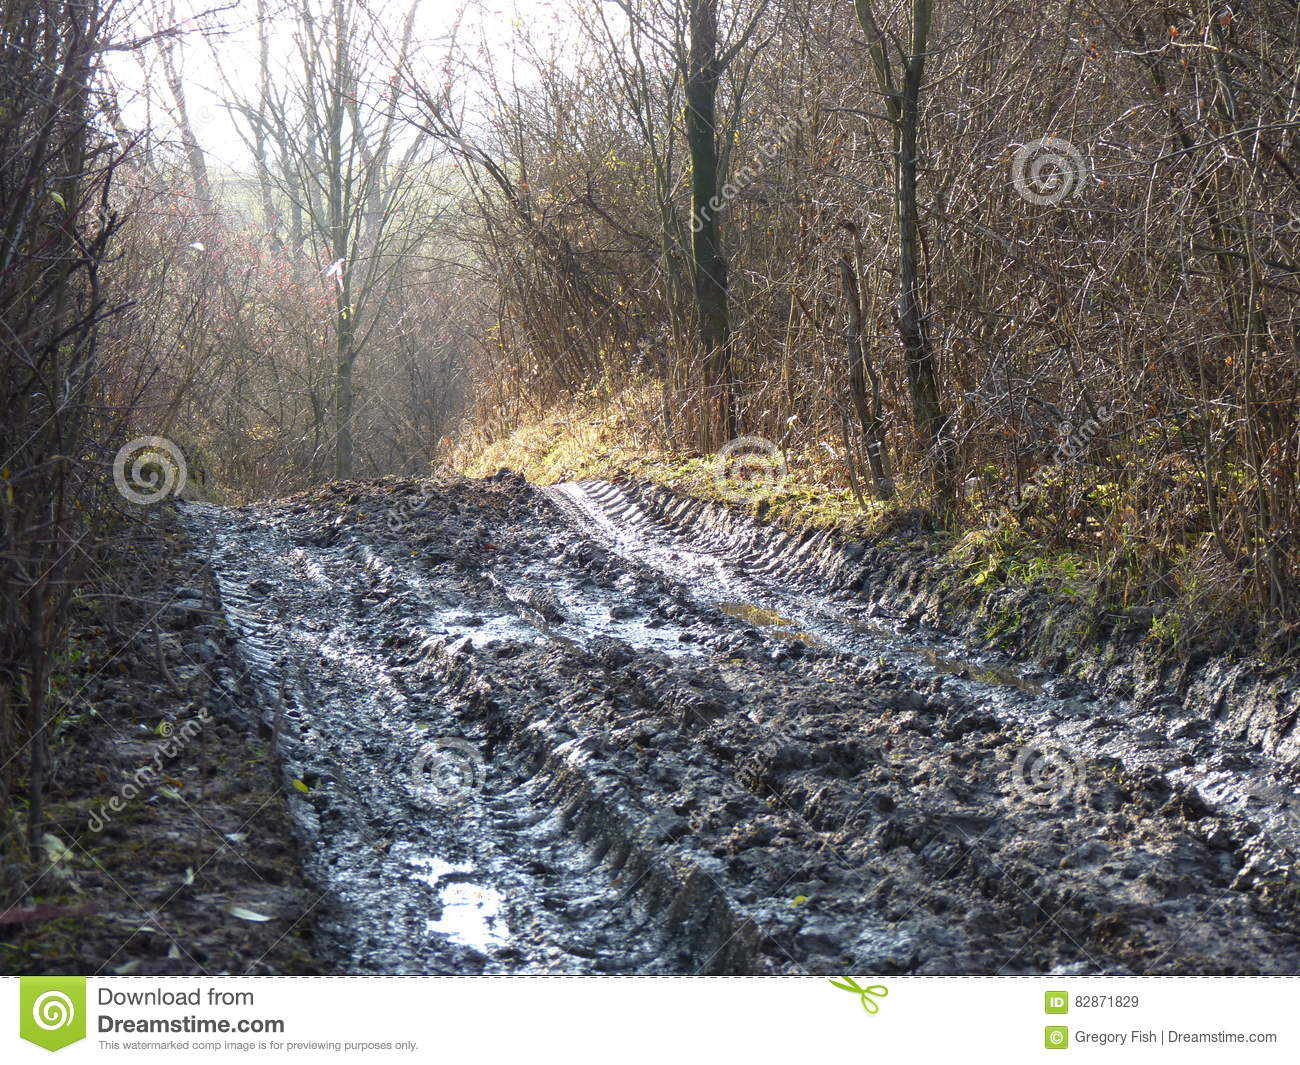 Mud and puddles on the dirt road.